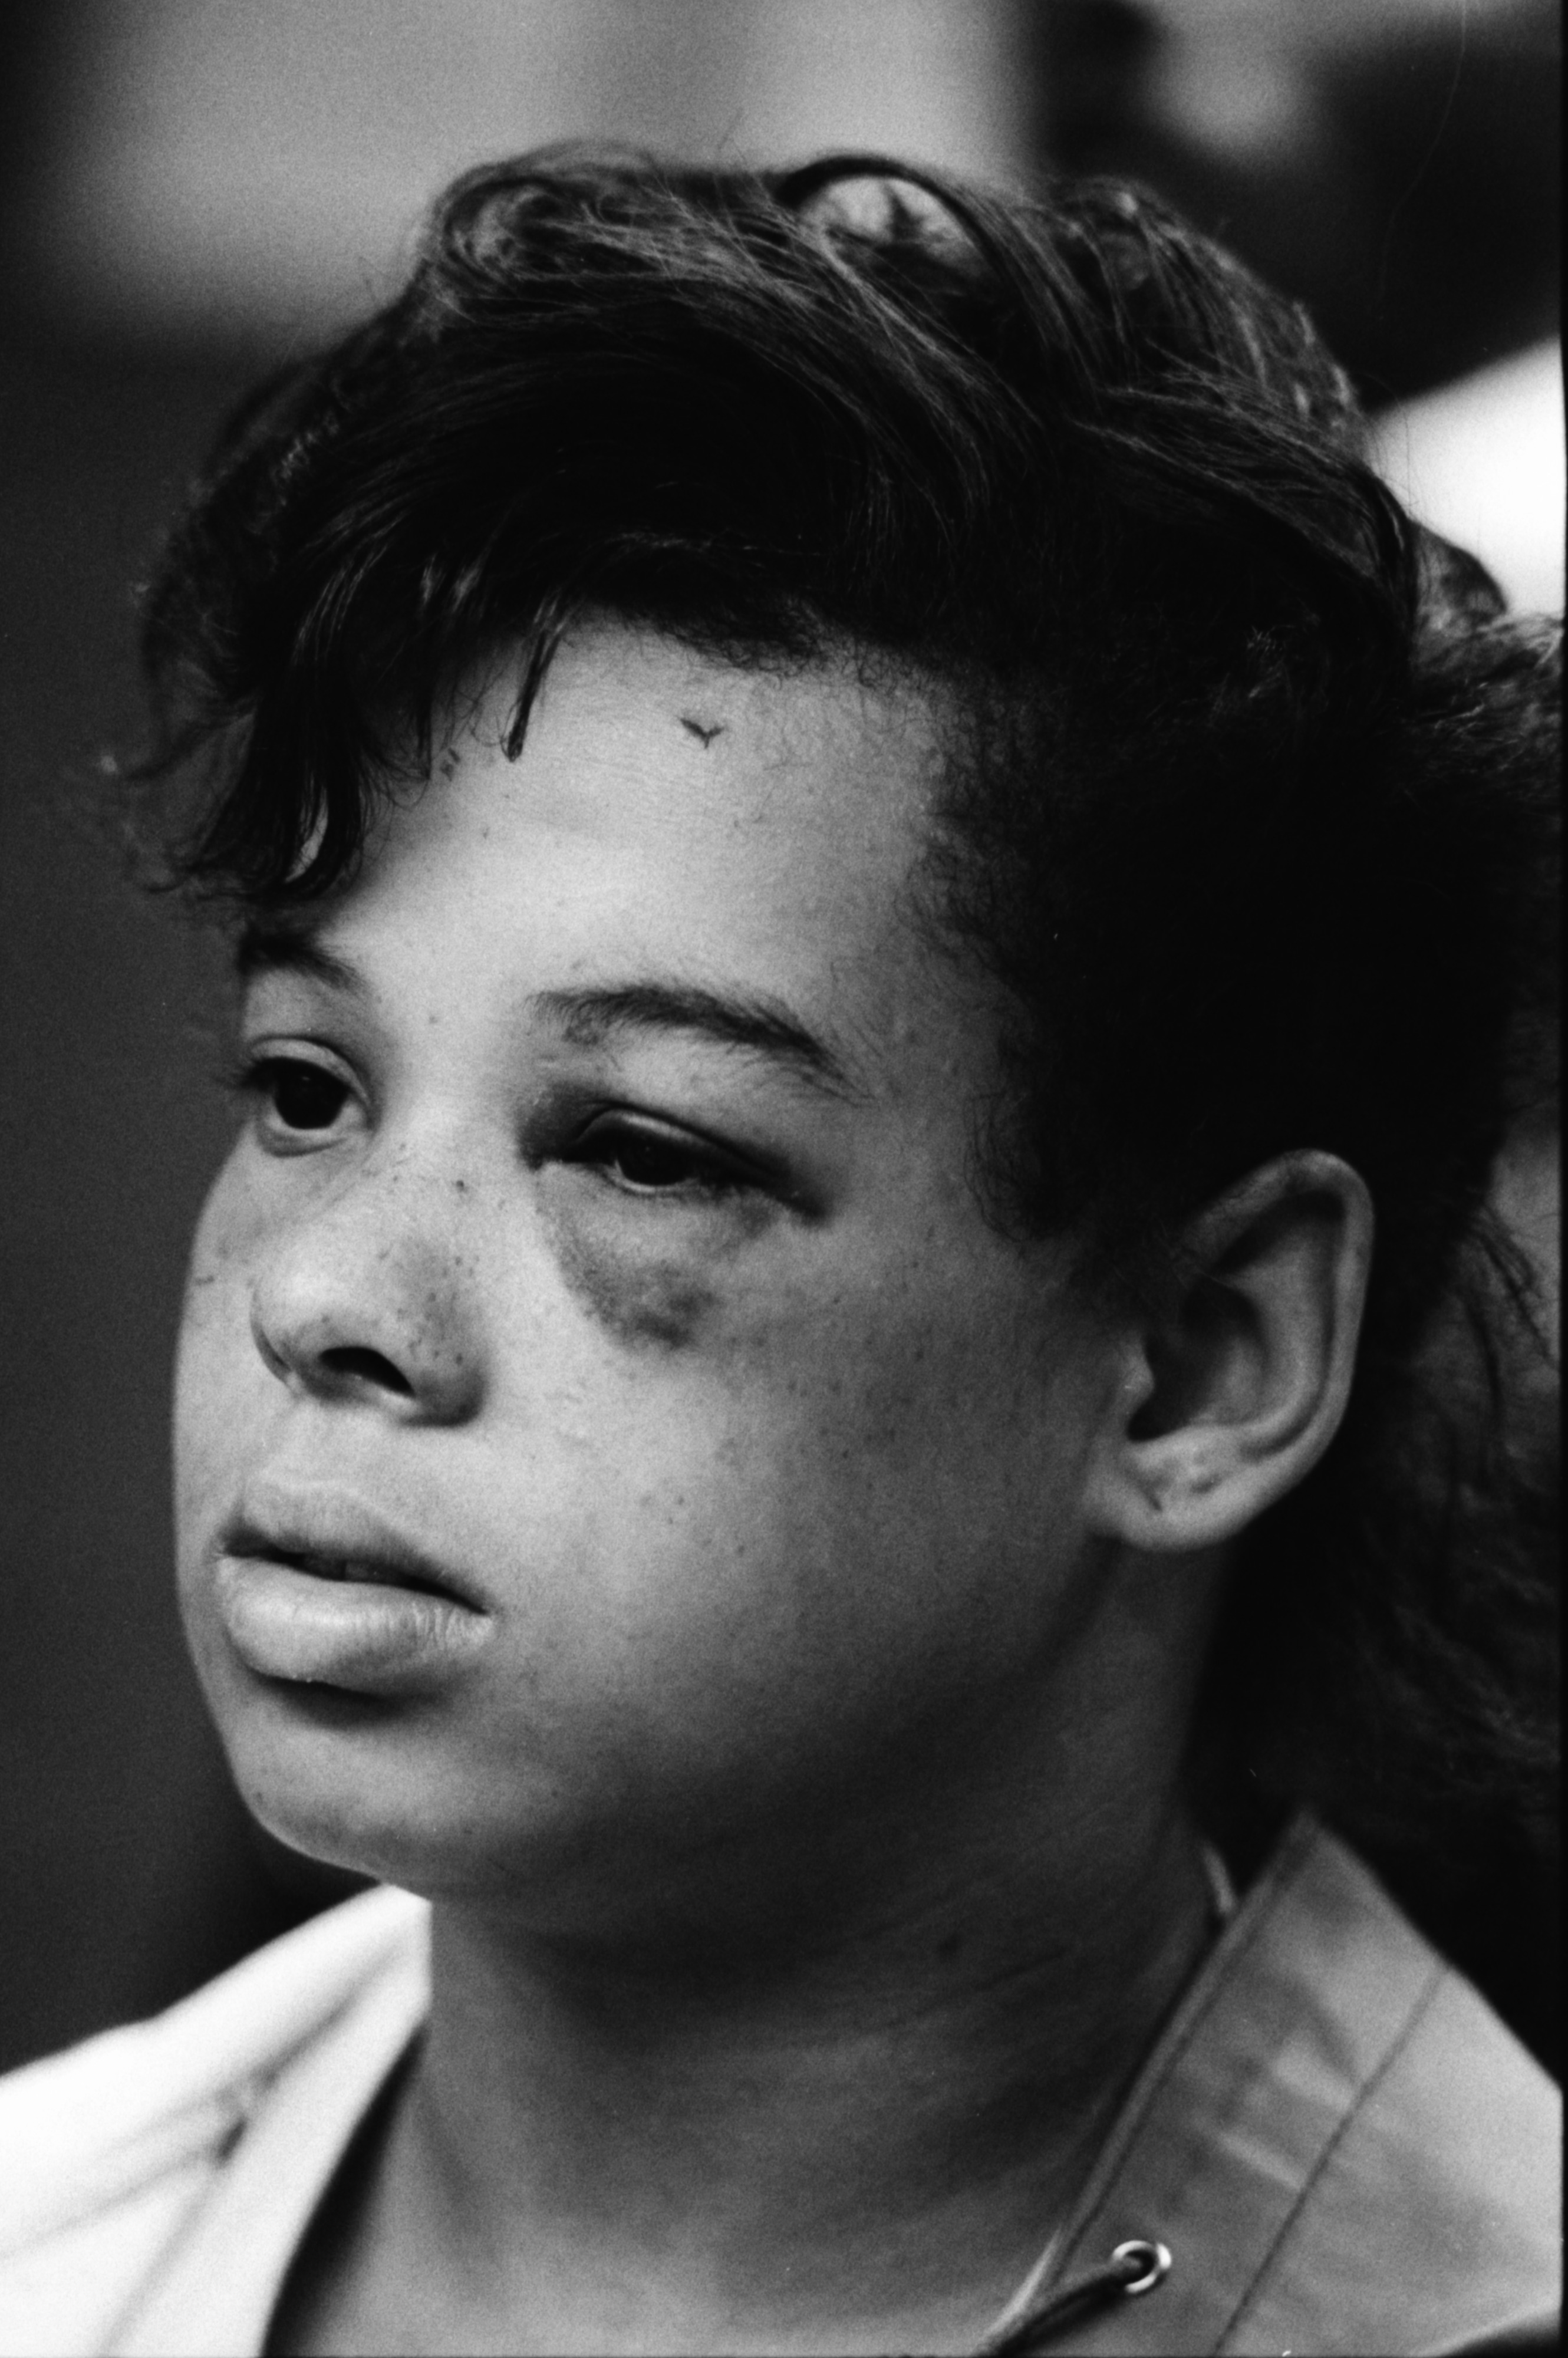 Injured Huron High School Student Yvette Ashford at Ann Arbor Public Schools Meeting on Bus Crash, August 1987 image